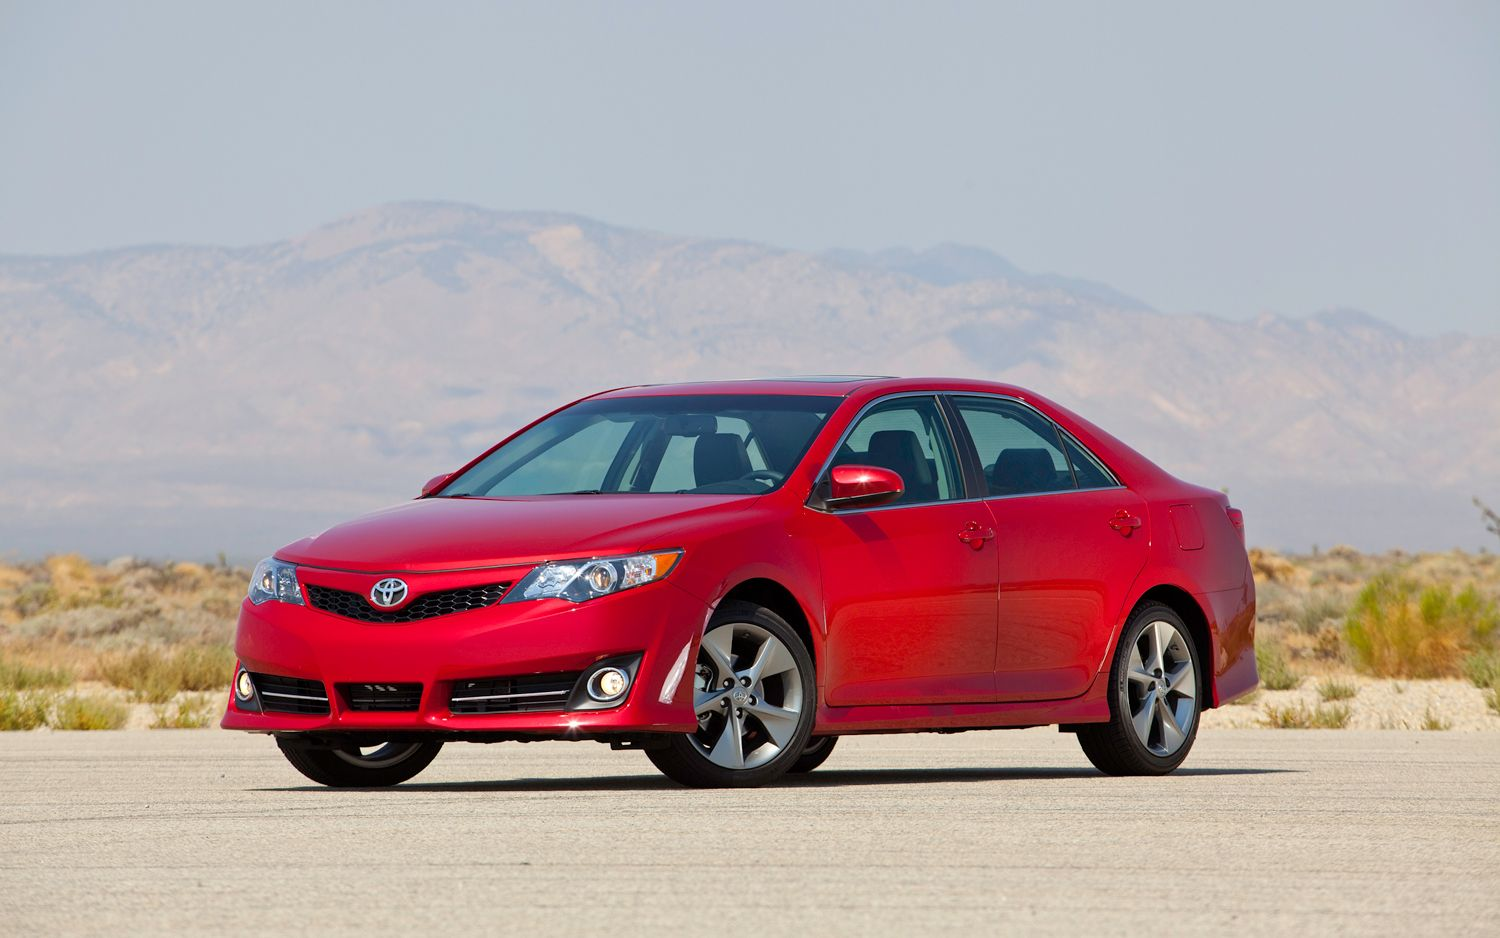 2012 Toyota Camry For Sale >> 2012 Toyota Camry SE Sport to Go on Sale This Weekend